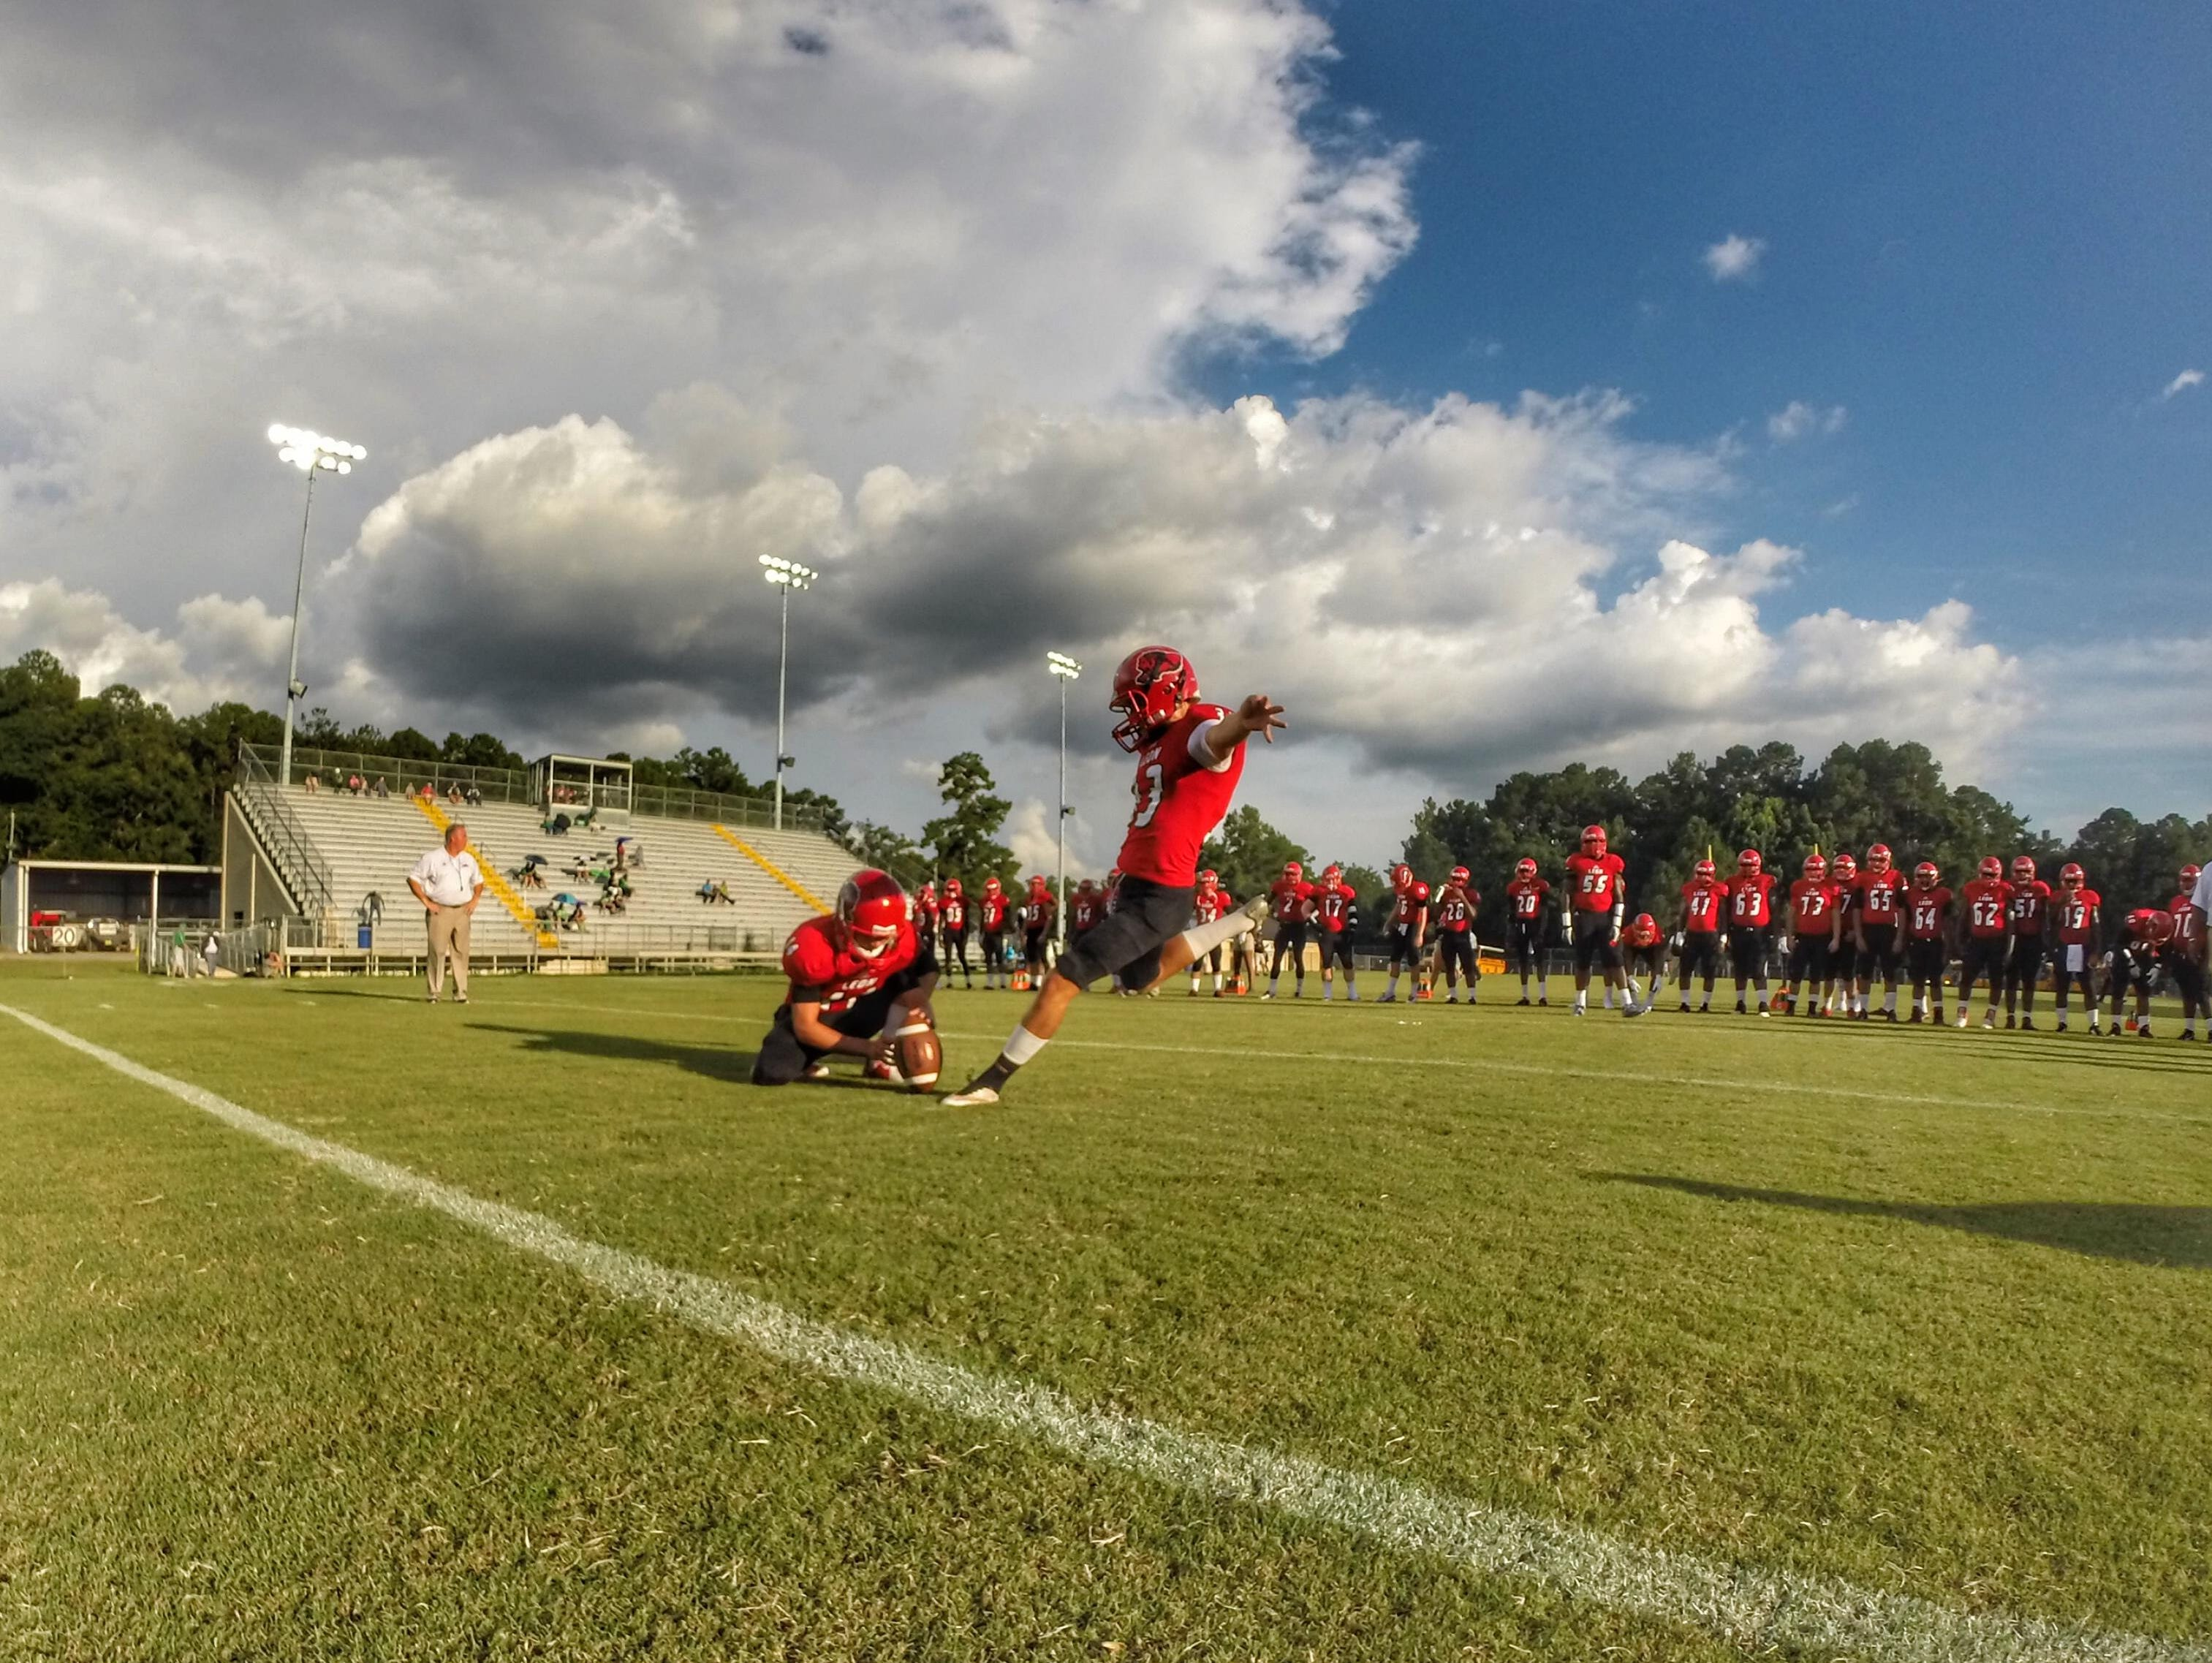 Leon kicker Jack Driggers warms up prior to the Lions playing Suwannee. Driggers won the game with a 42-yard field goal as time expired.